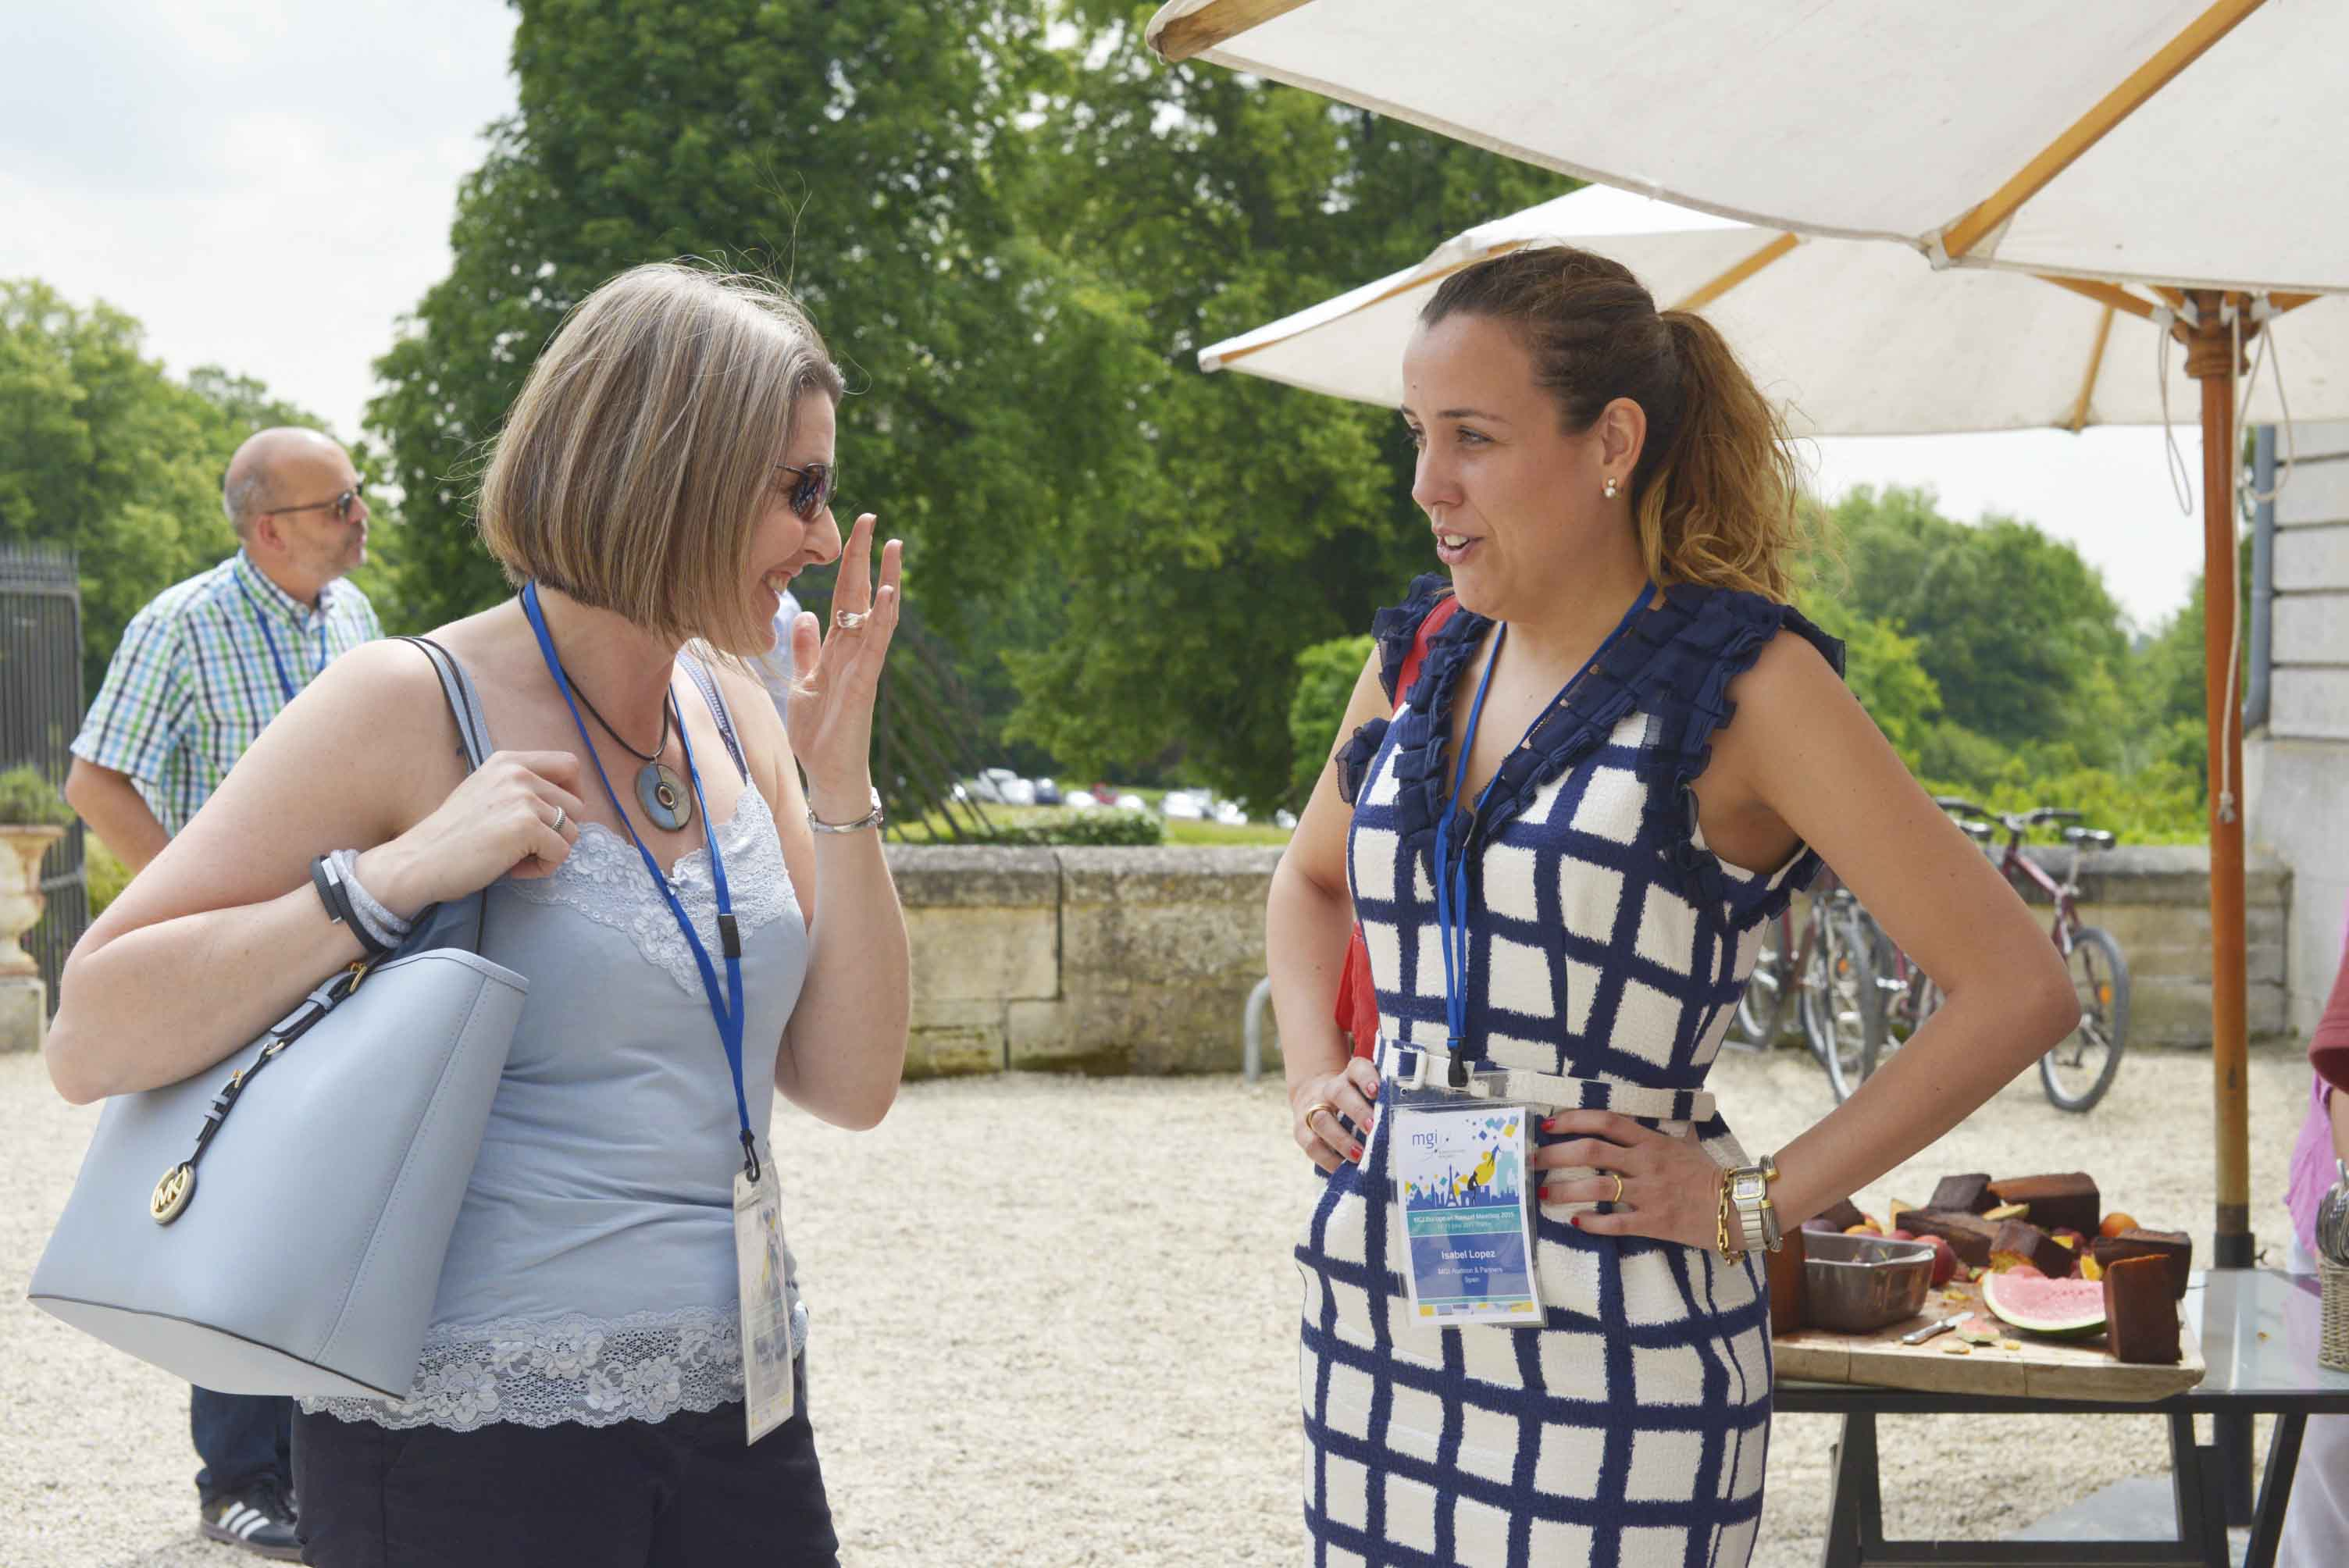 MGI World MGI Worldwide Europe Area Meeting 2015, Le Grand Mello, accounting delegates Rachel and Isabella on patio image